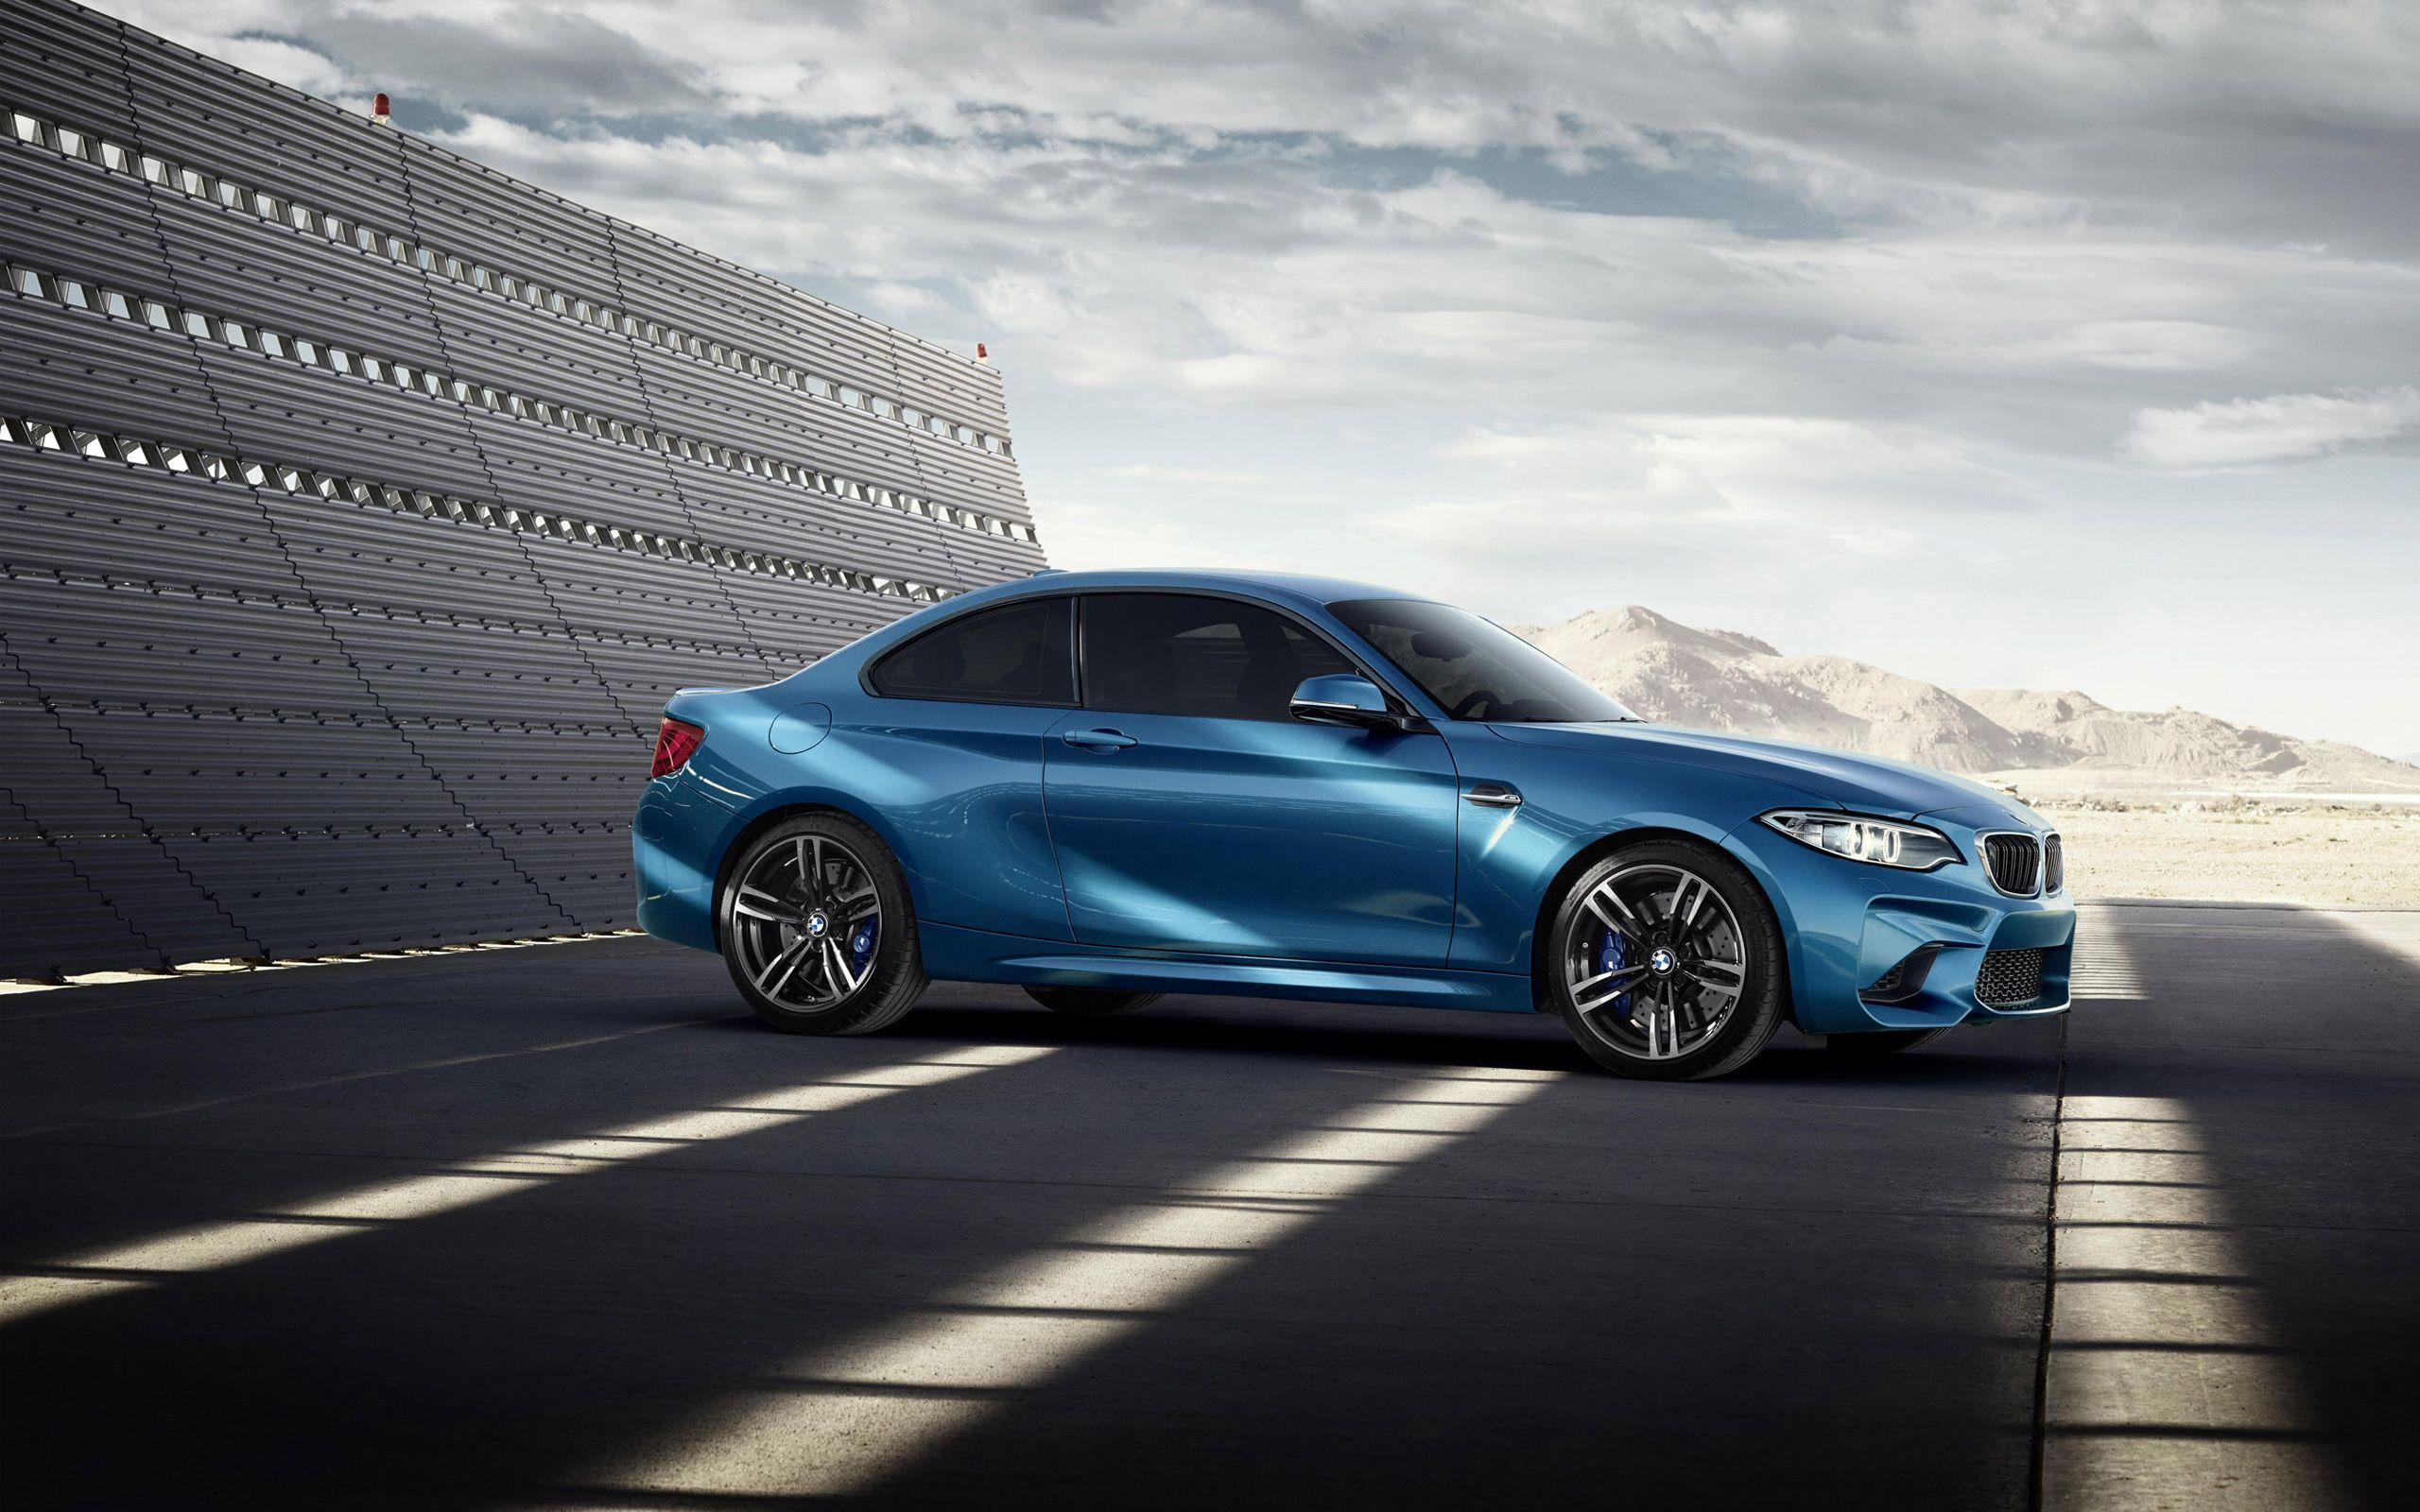 BMW M2 Wallpapers - Wallpaper Cave